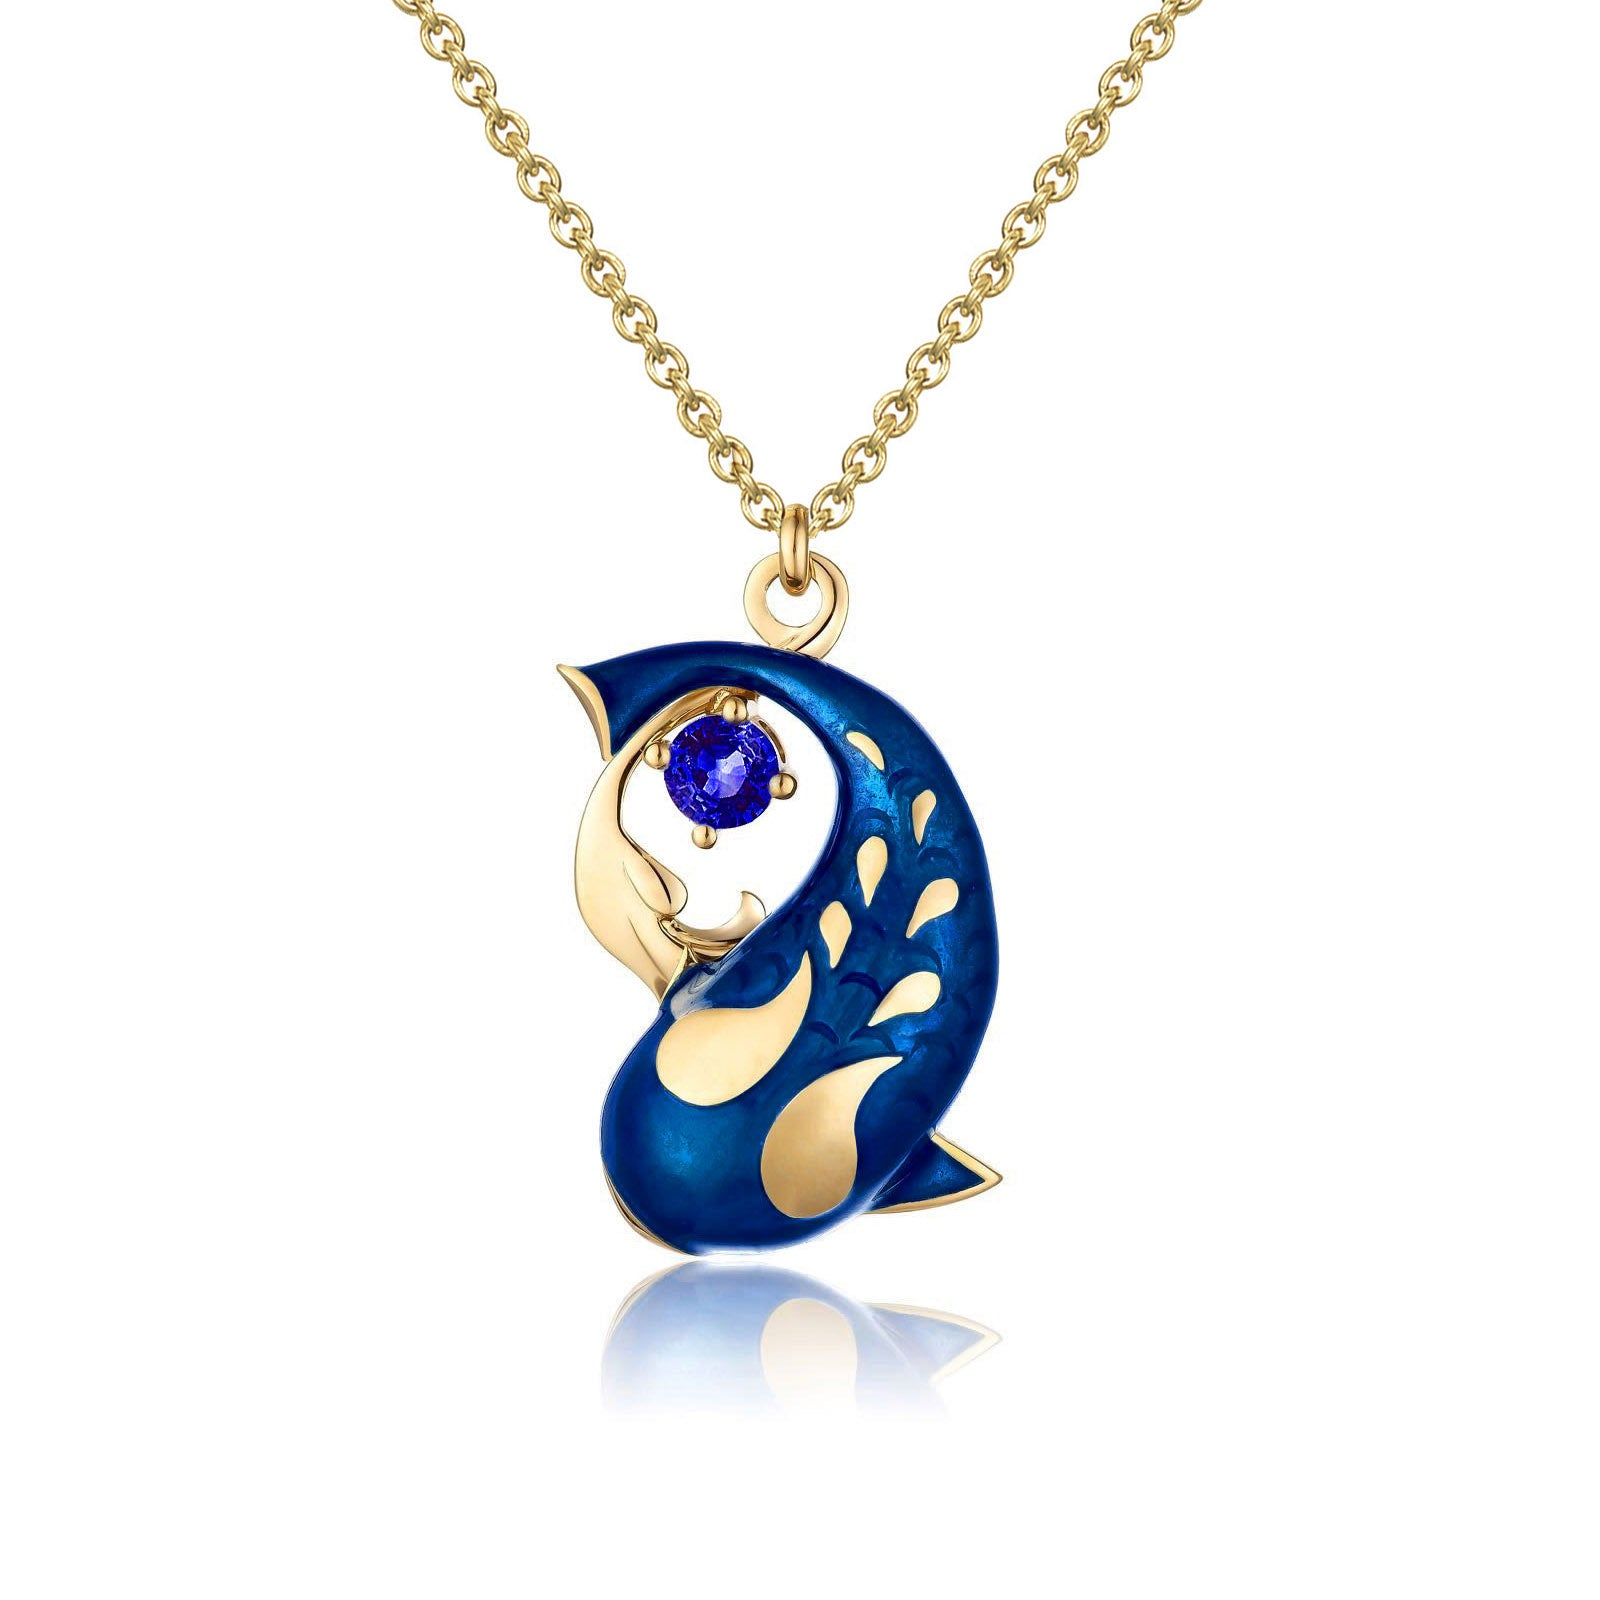 Zen Koi Necklace | 18K Gold +Blue Sapphire+High-temperature Vitreous Enamel